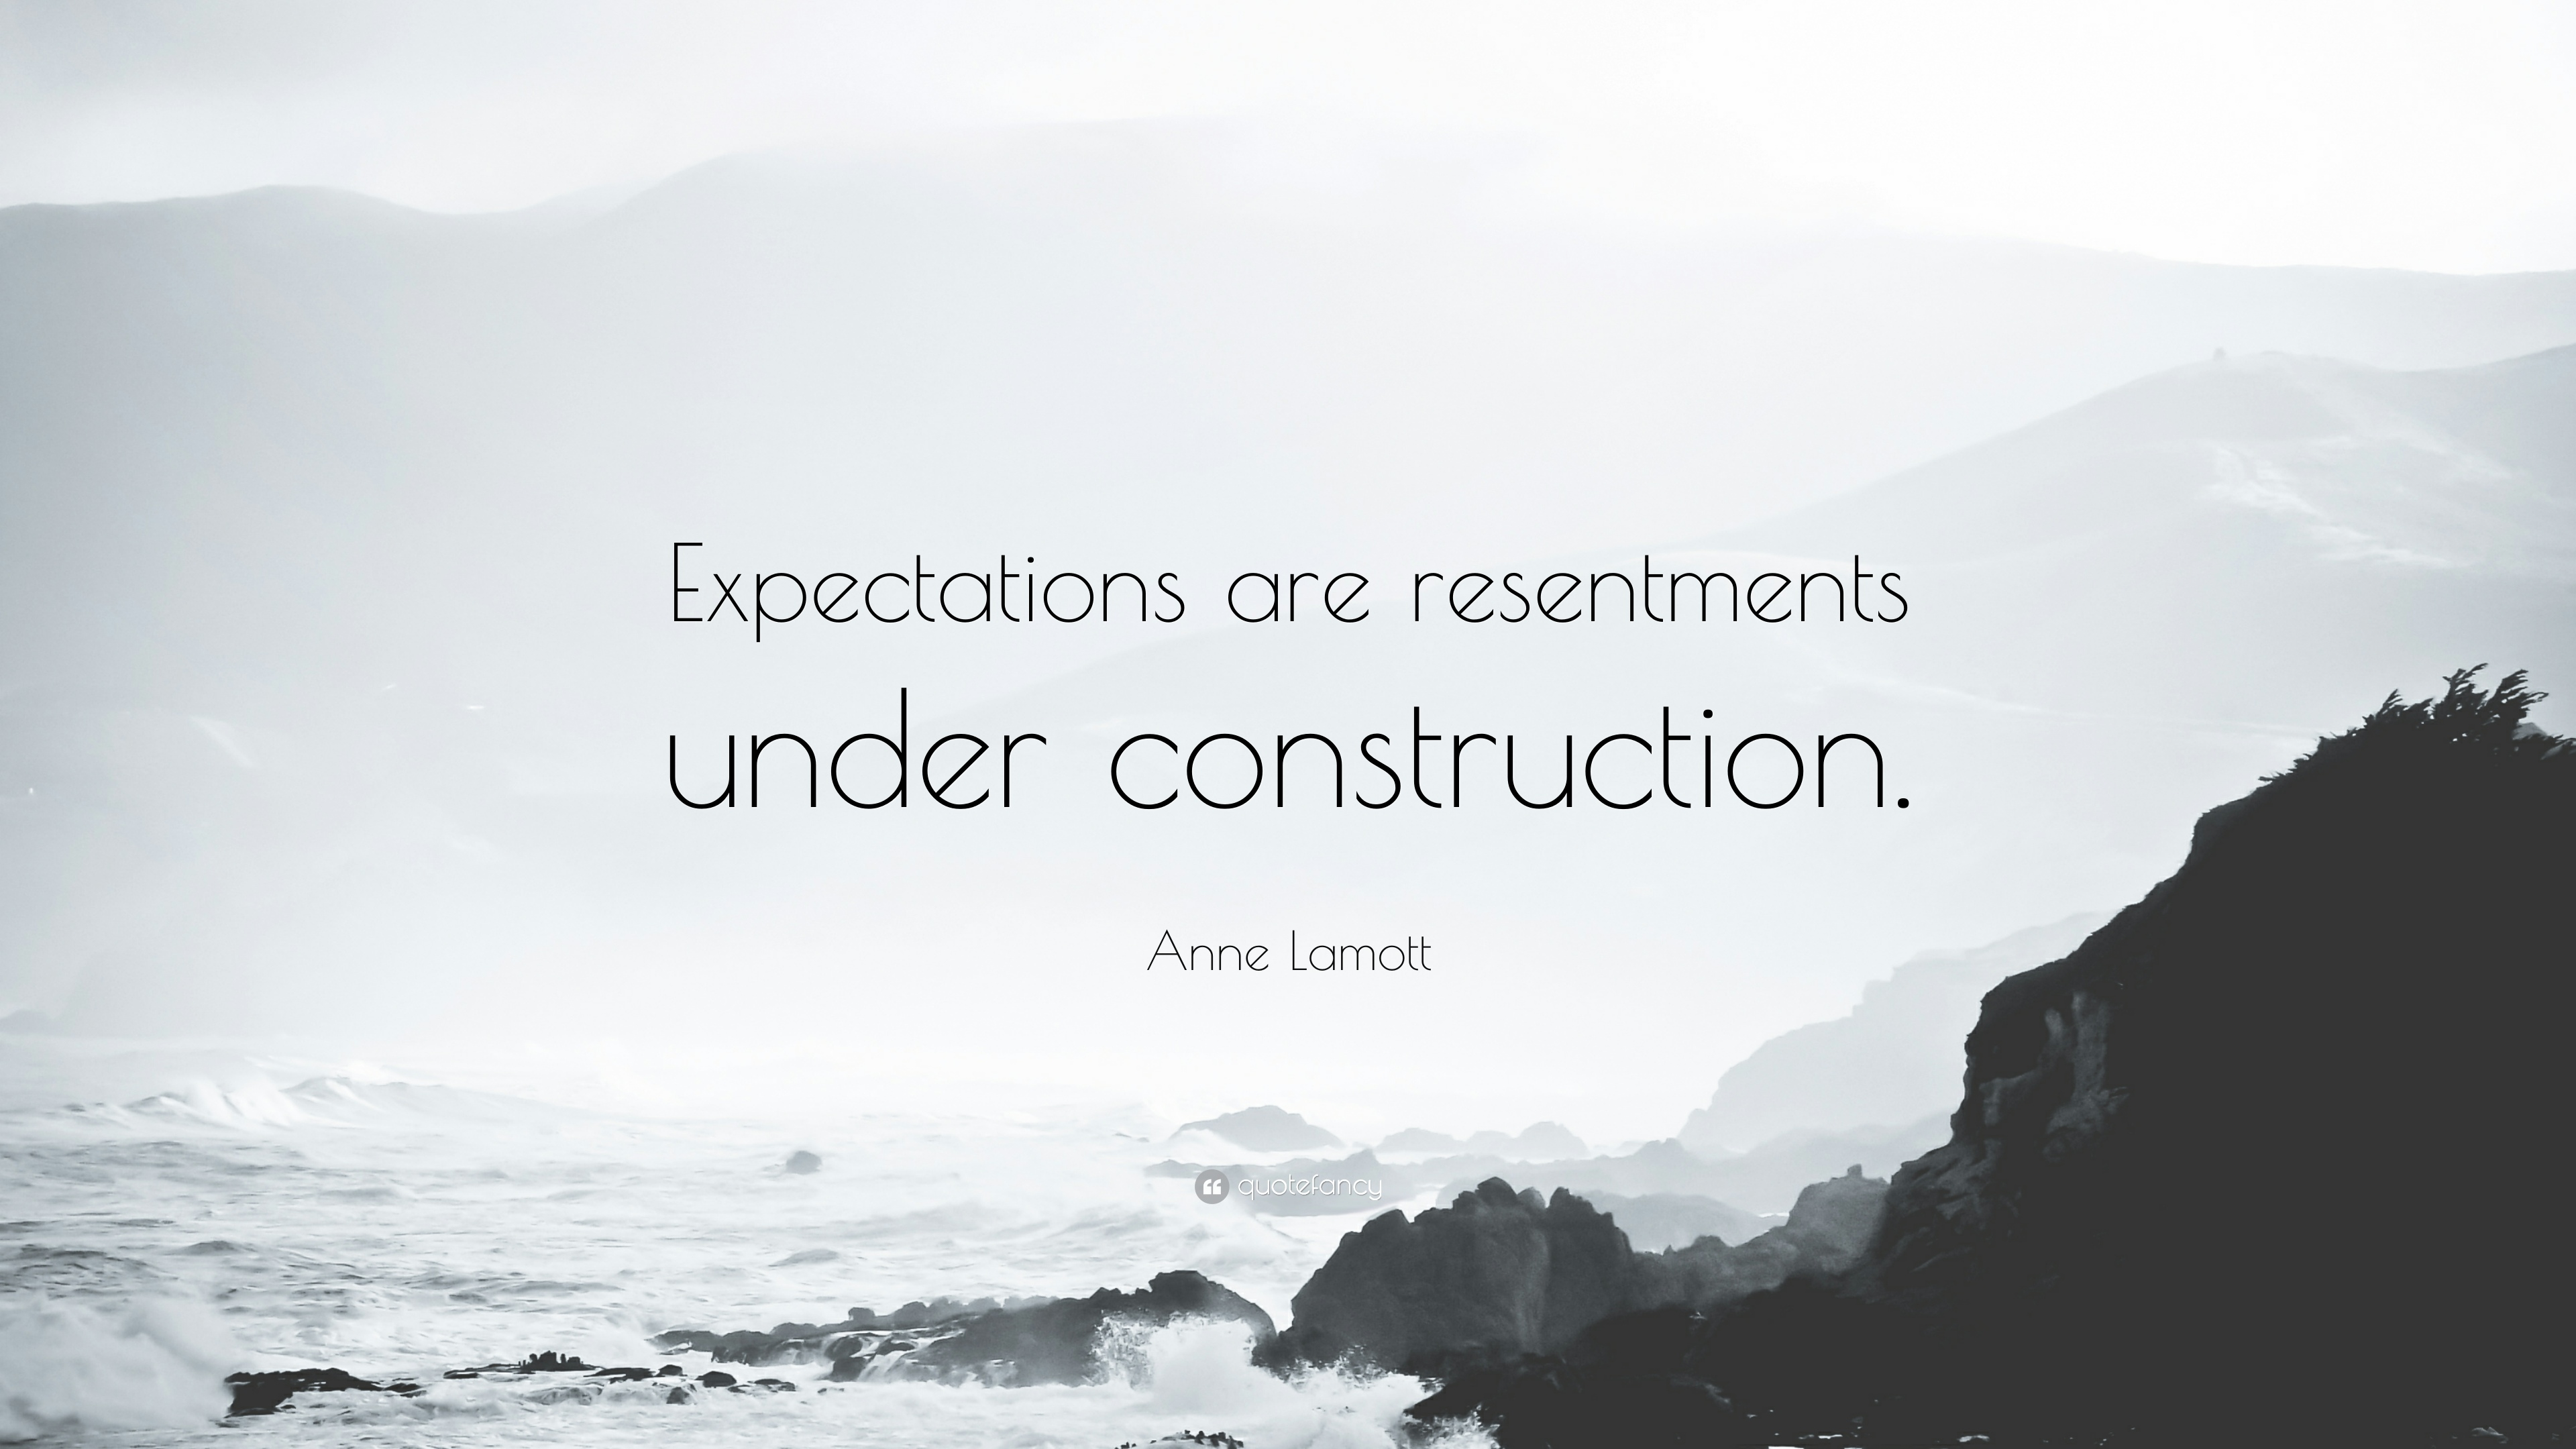 anne lamott quote expectations are resentments under construction